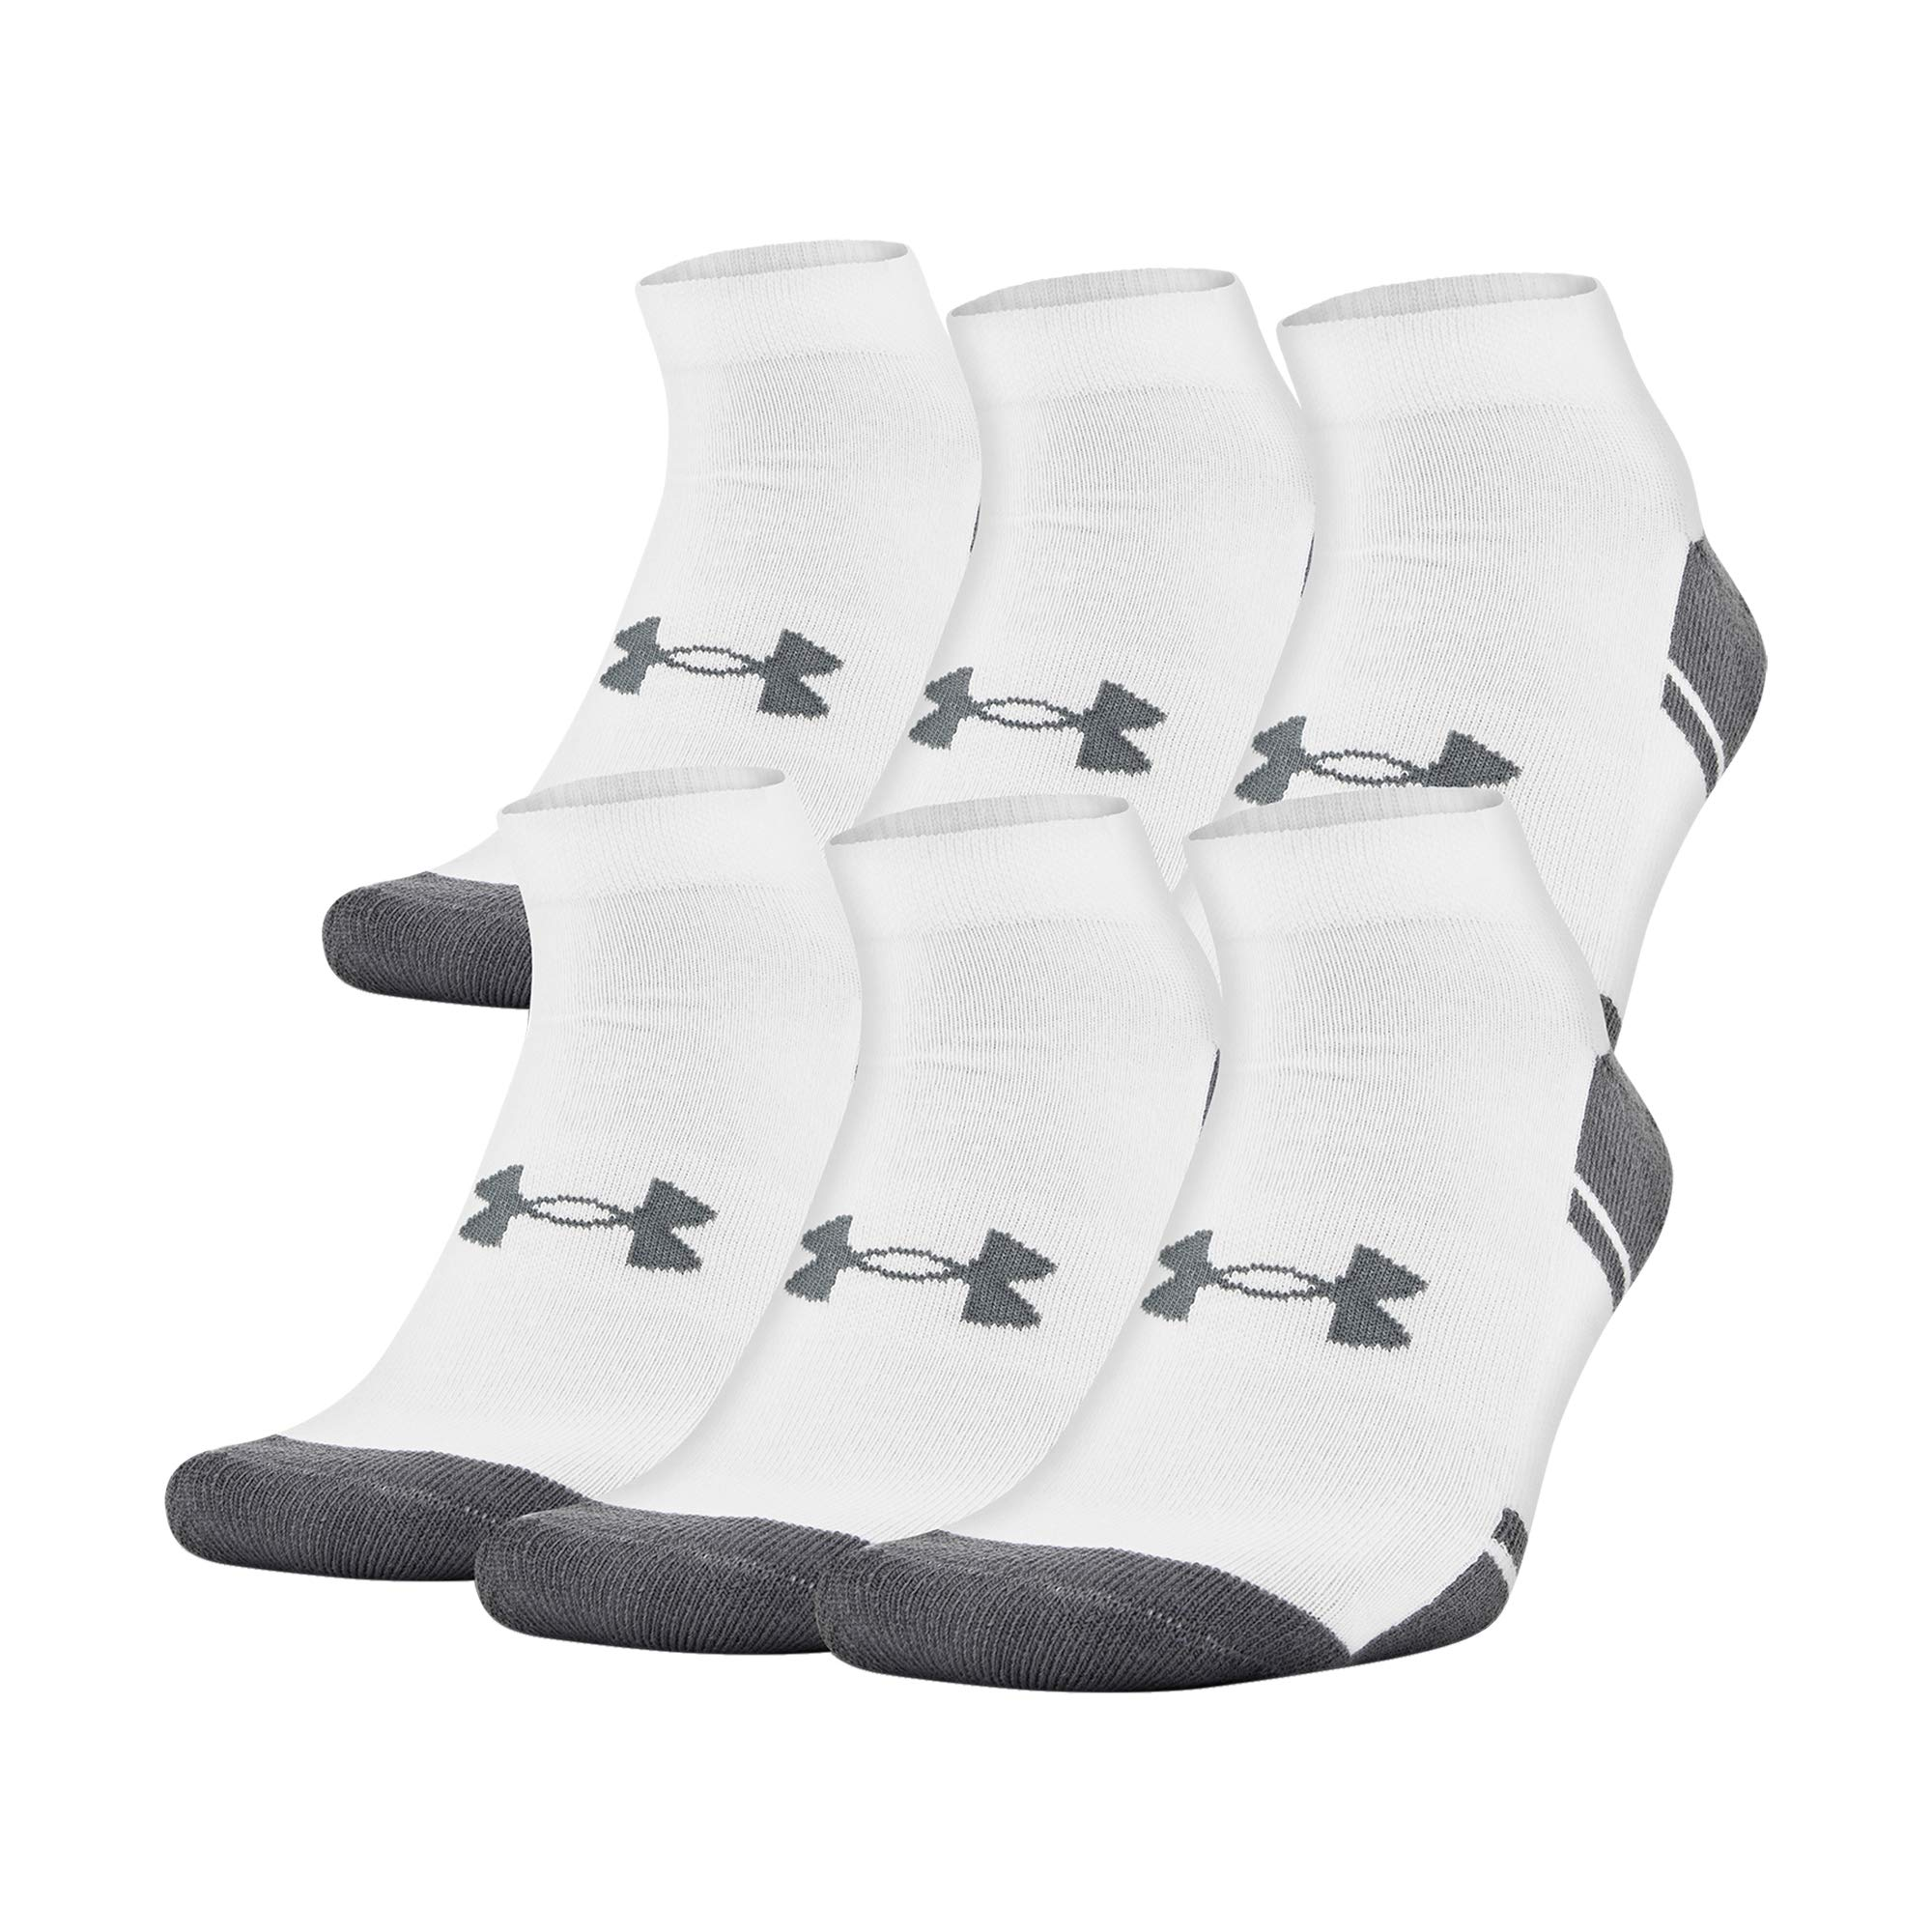 Under Armour Youth Resistor 3.0 Lo Cut Socks, 6 Pairs, White/Graphite, Shoe Size: Youth 13.5K-4Y by Under Armour